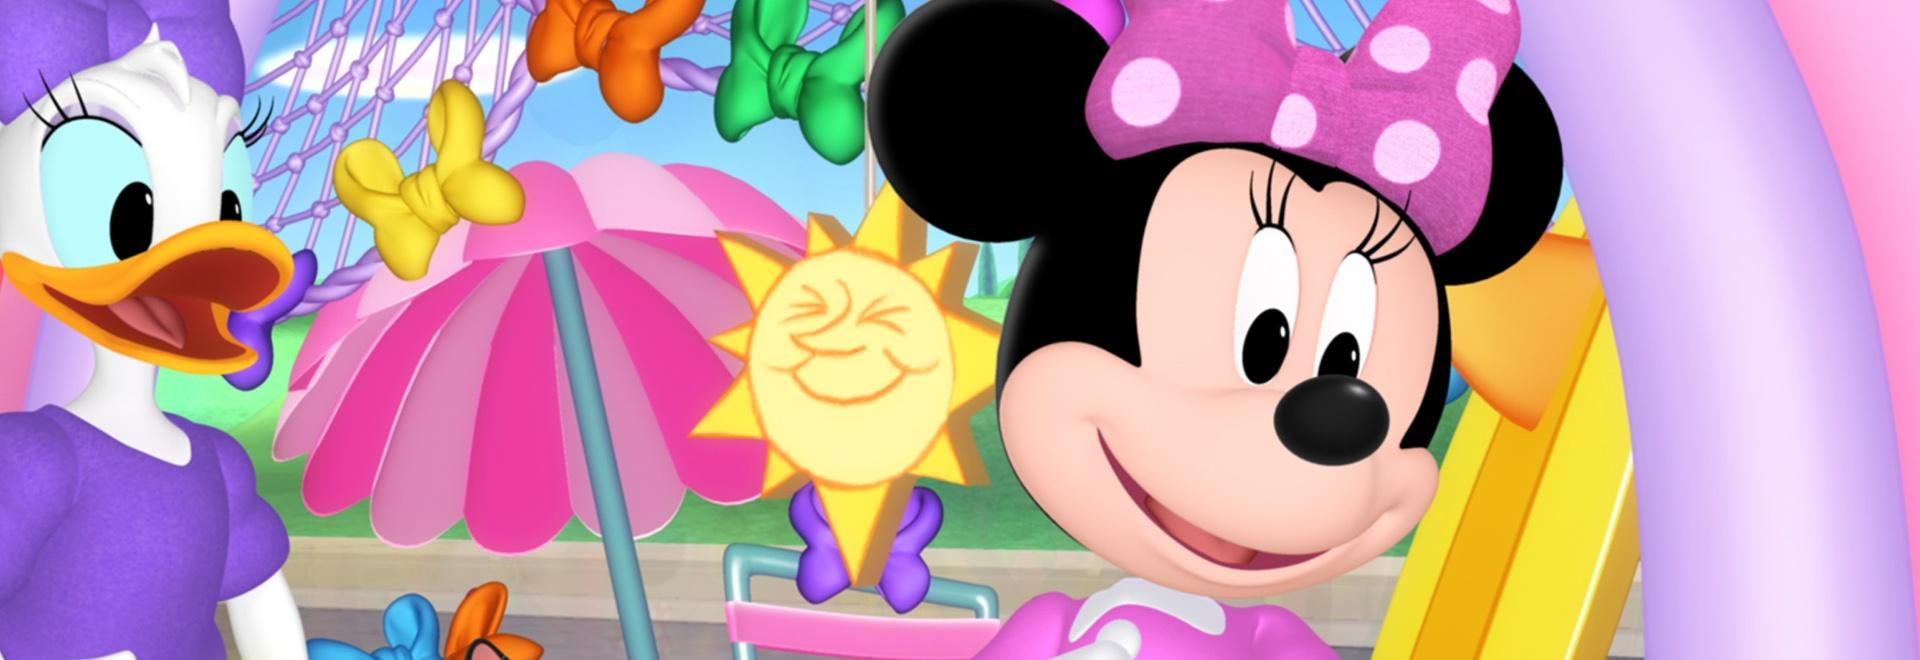 Minnie Toons - Stag. 2 Ep. 19 - Le nuove babysitter